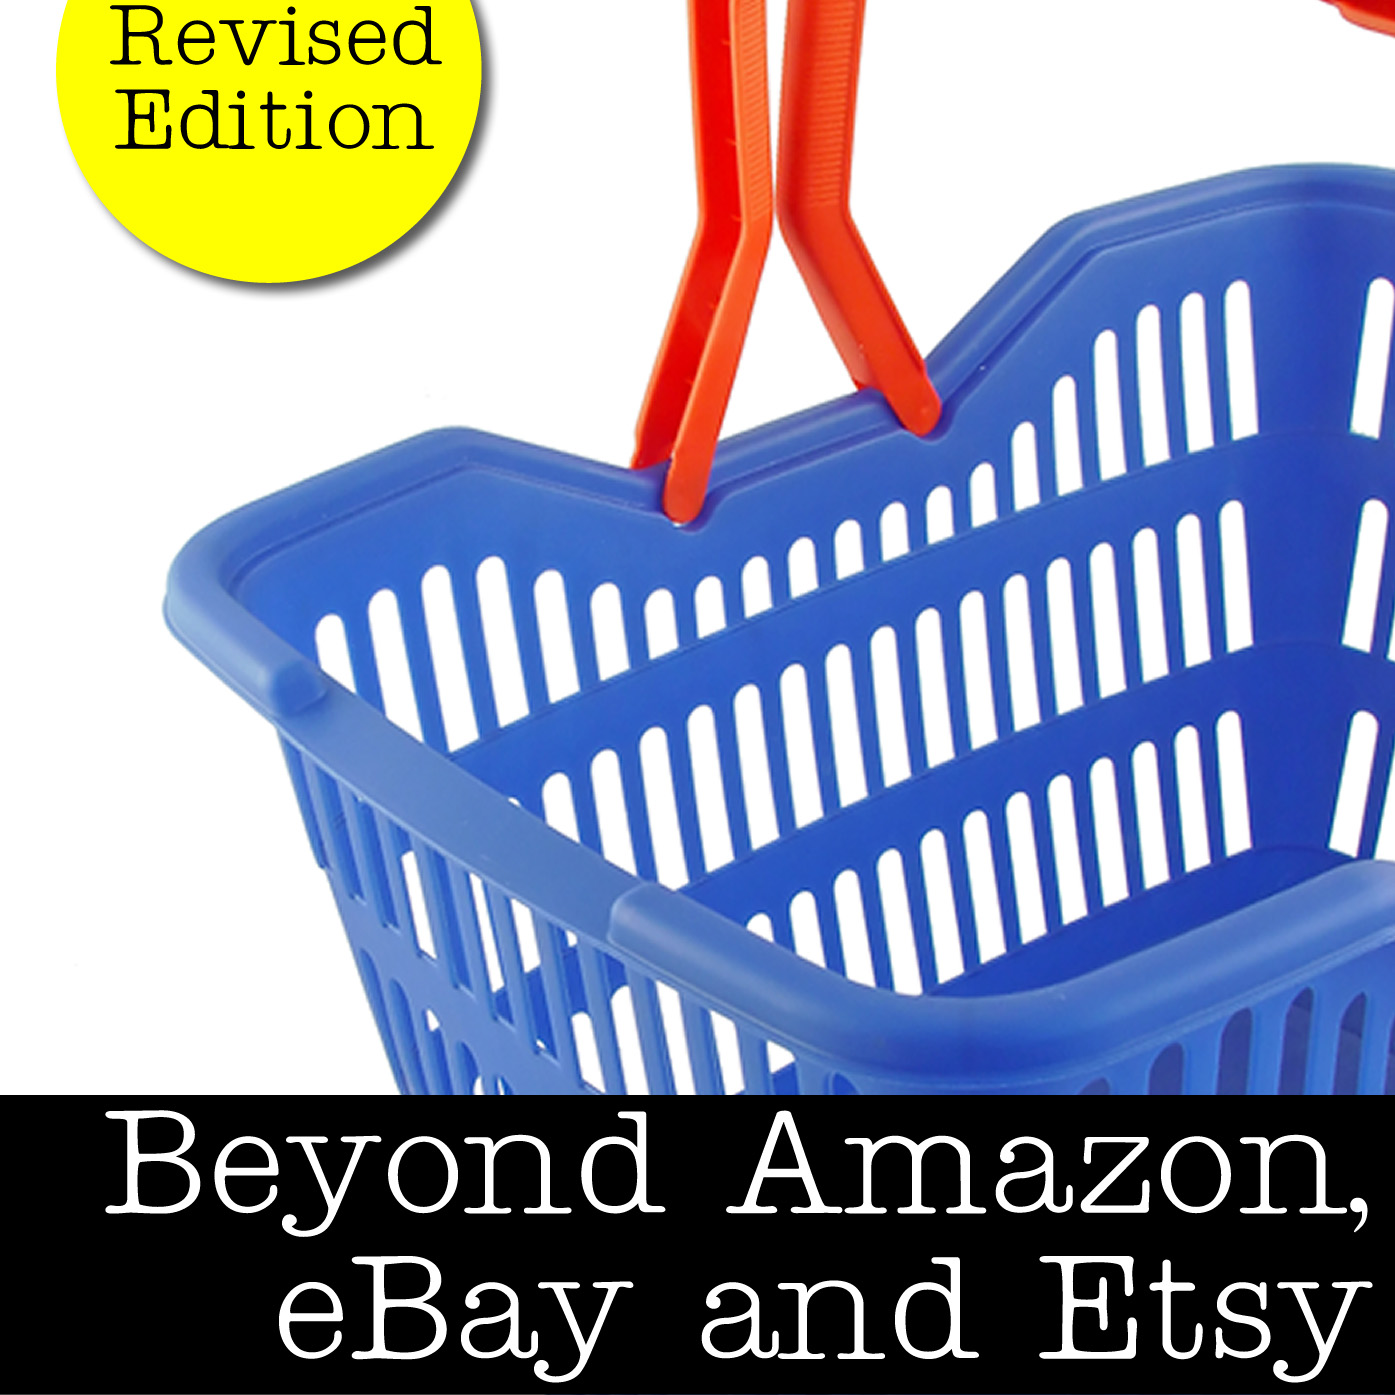 Beyond Amazon, eBay, and Etsy